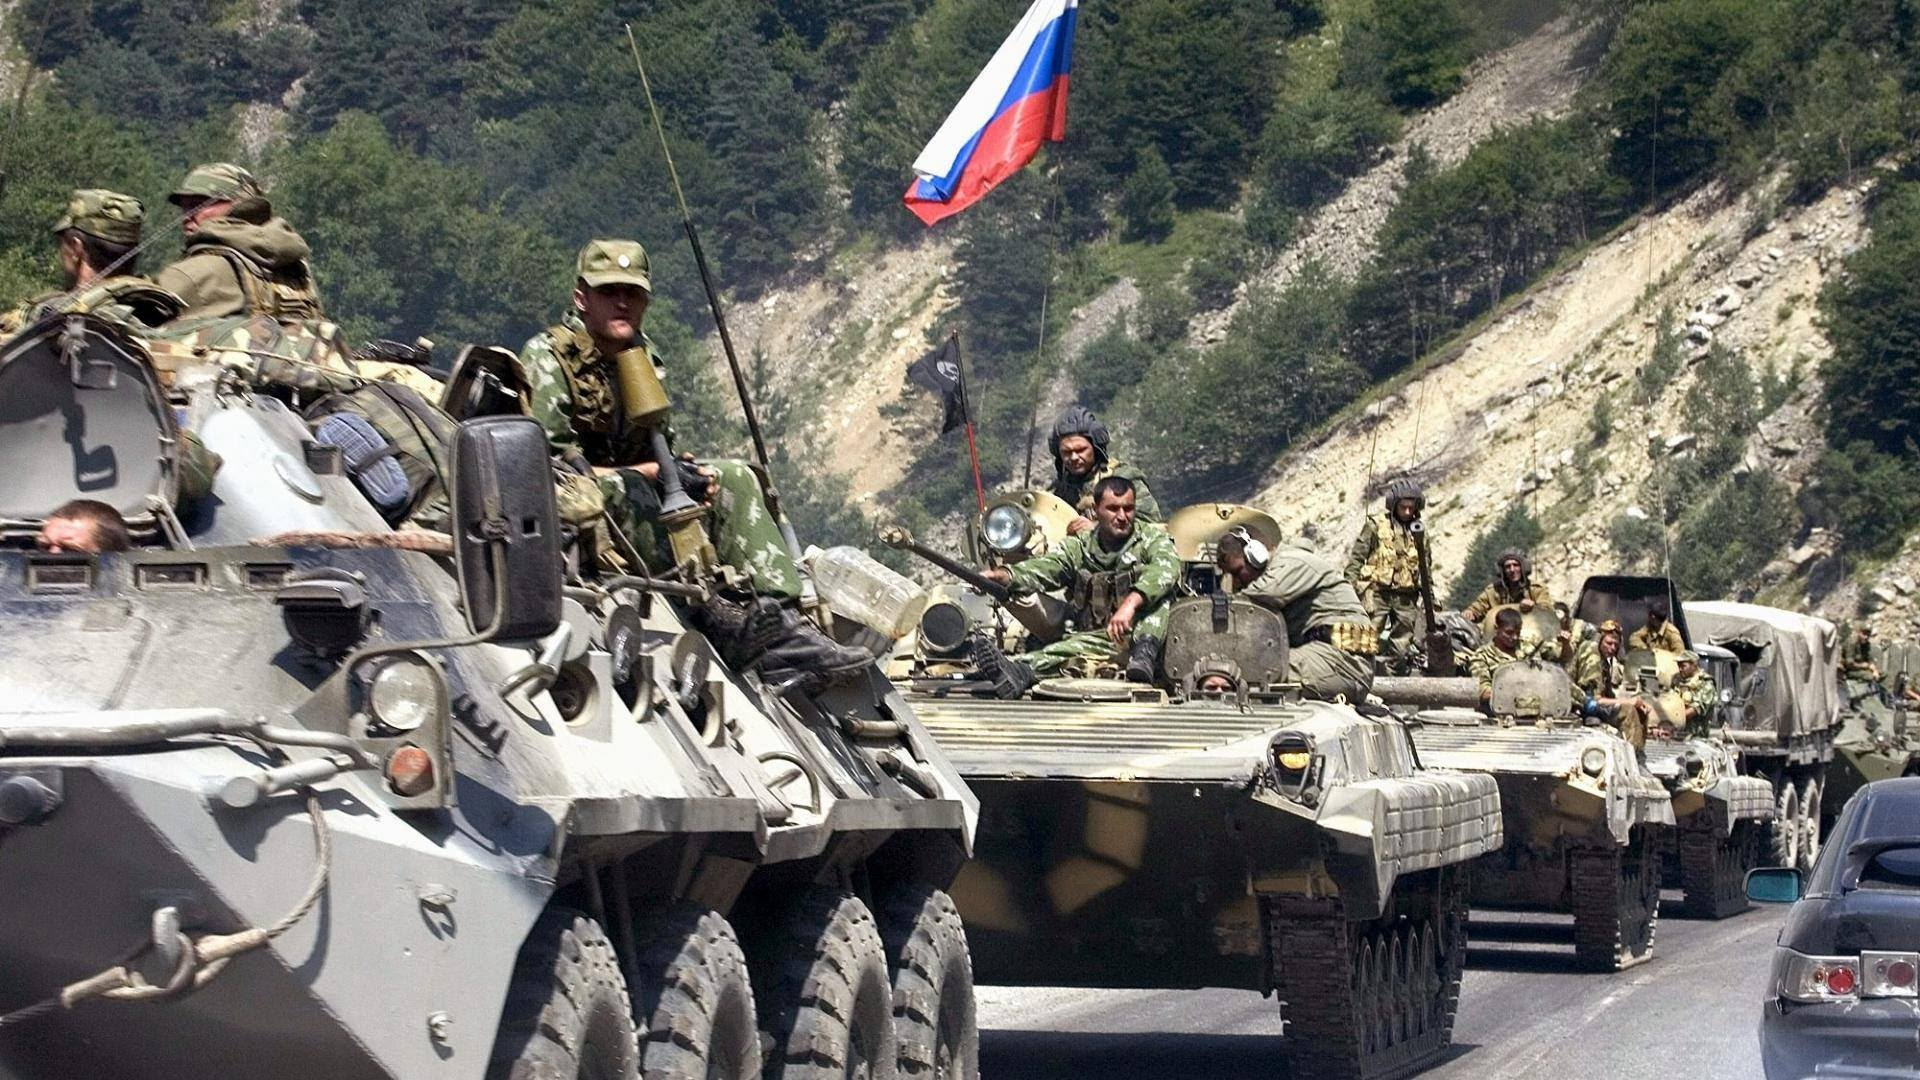 Russian forces withdraw from their sites in Aleppo countryside